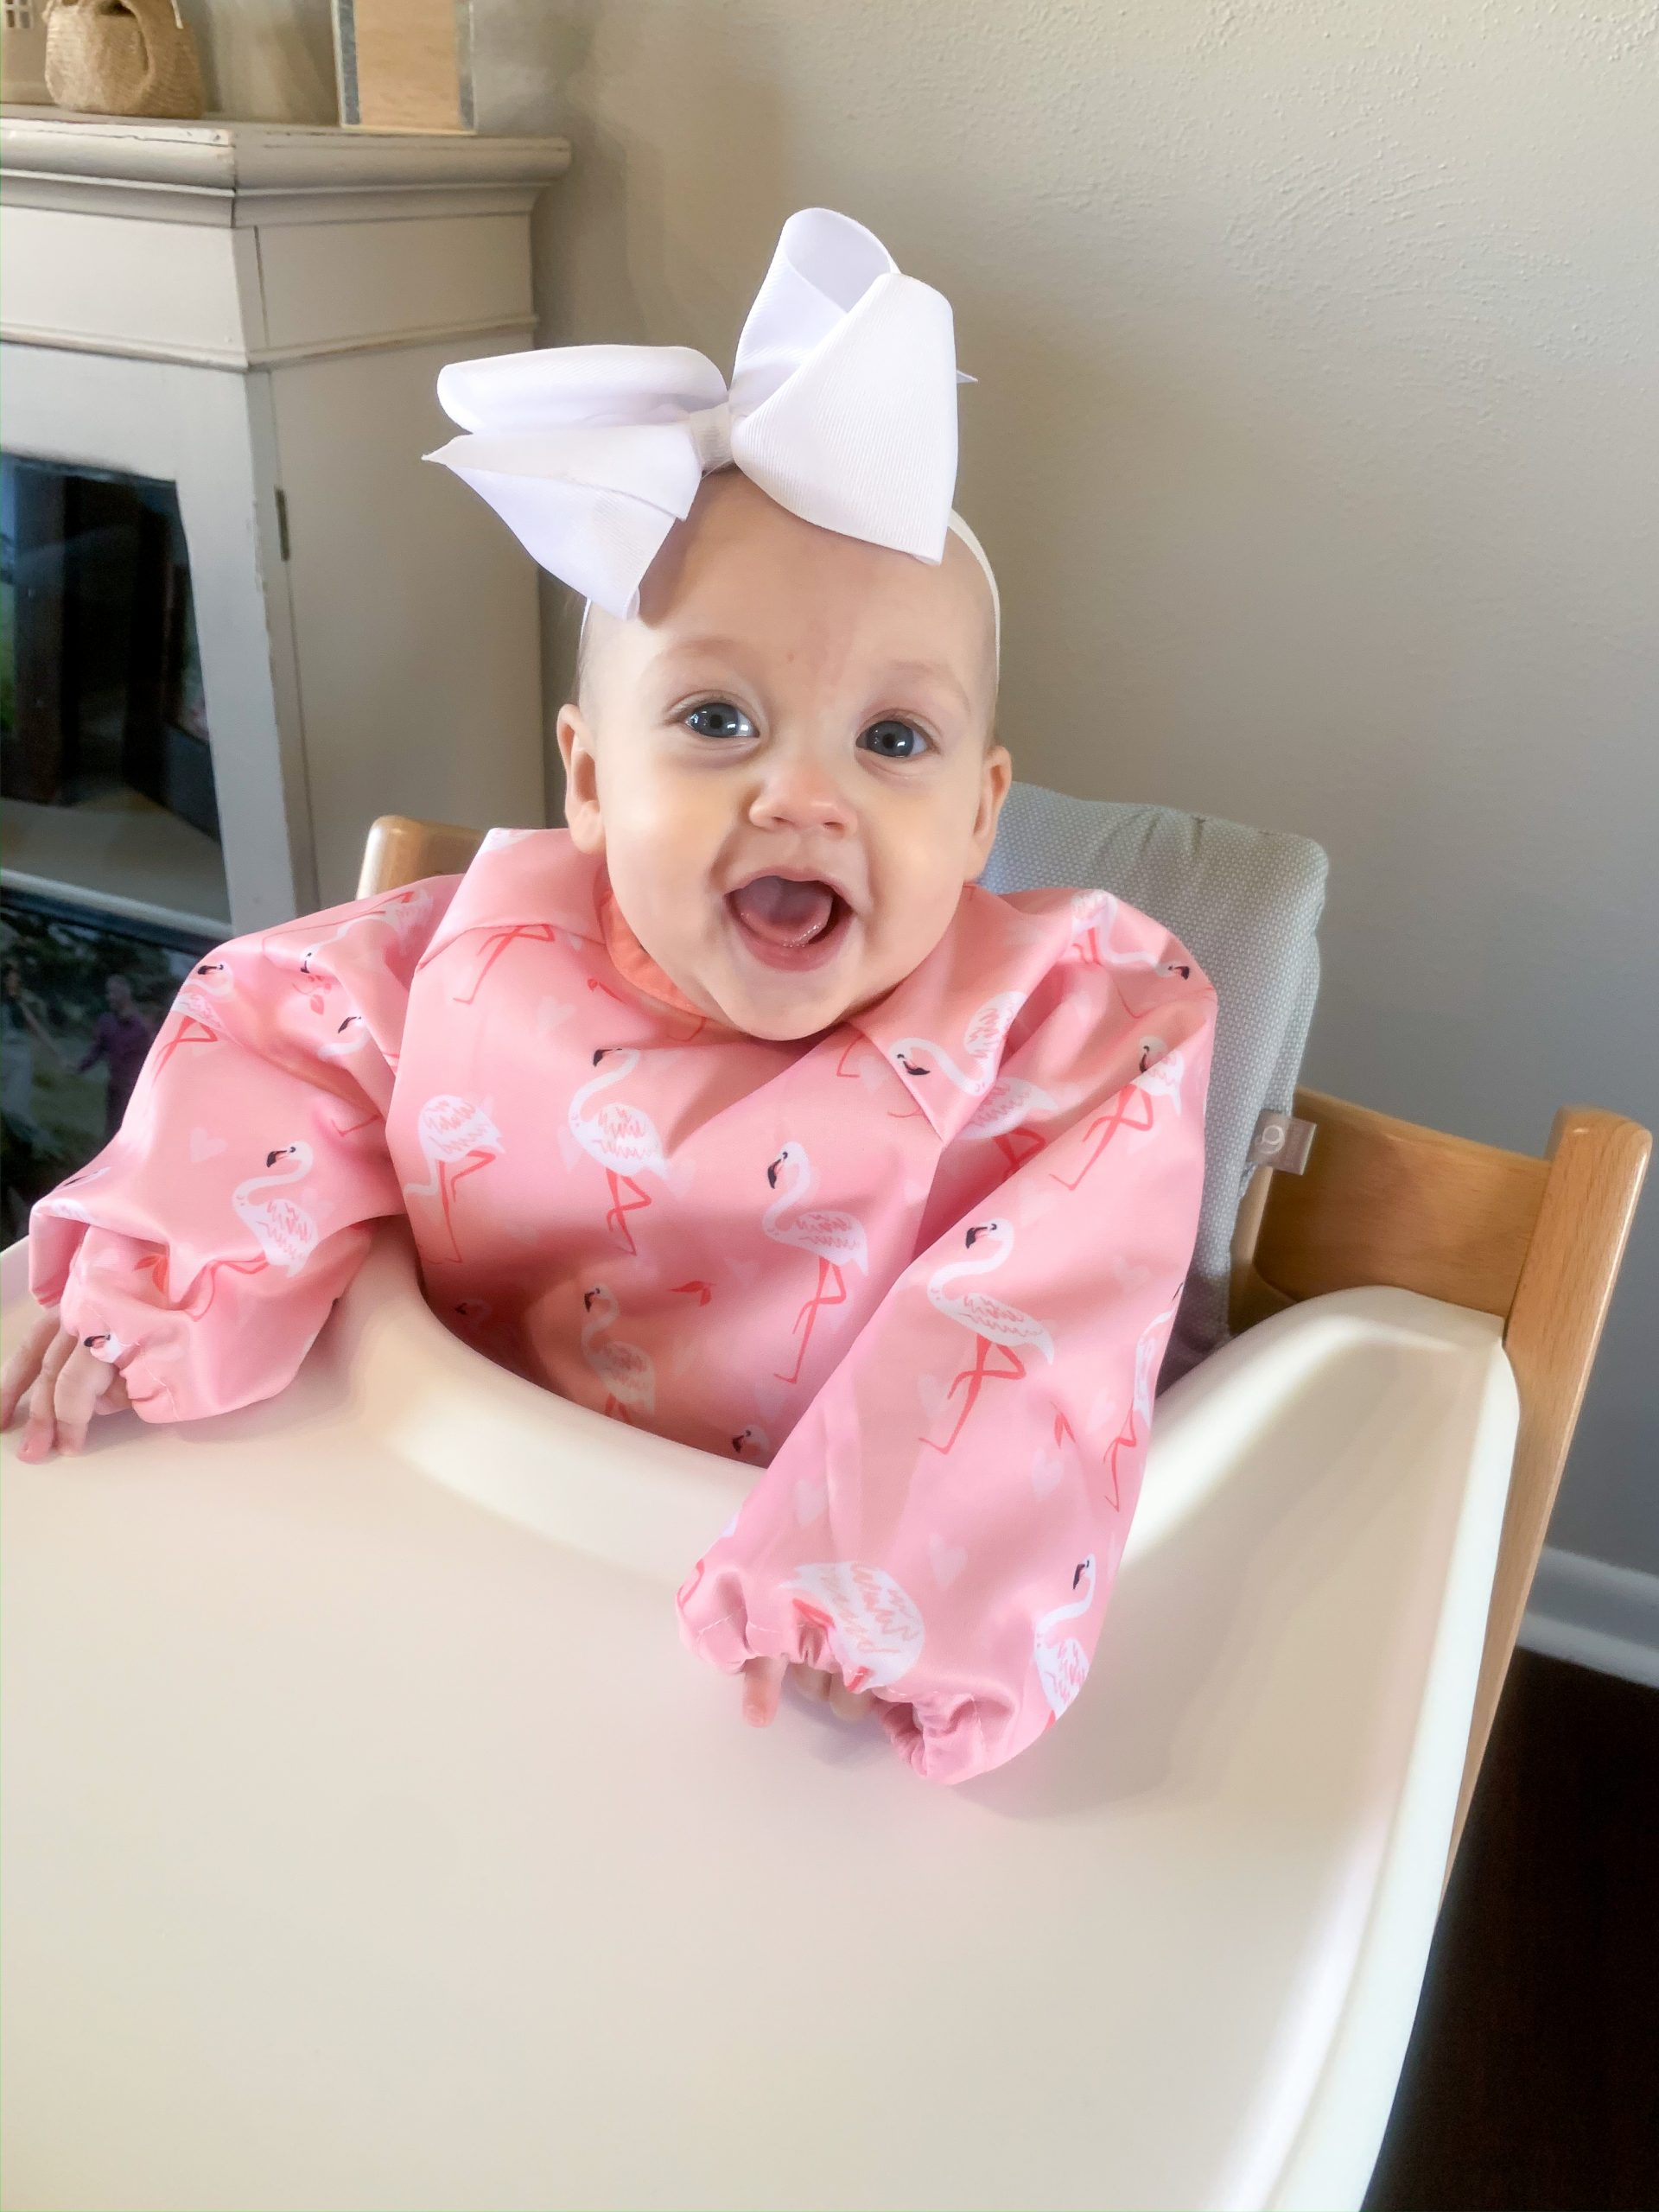 baby-led weaning for beginnings, baby-led weaning blog, baby-fed weaning blog